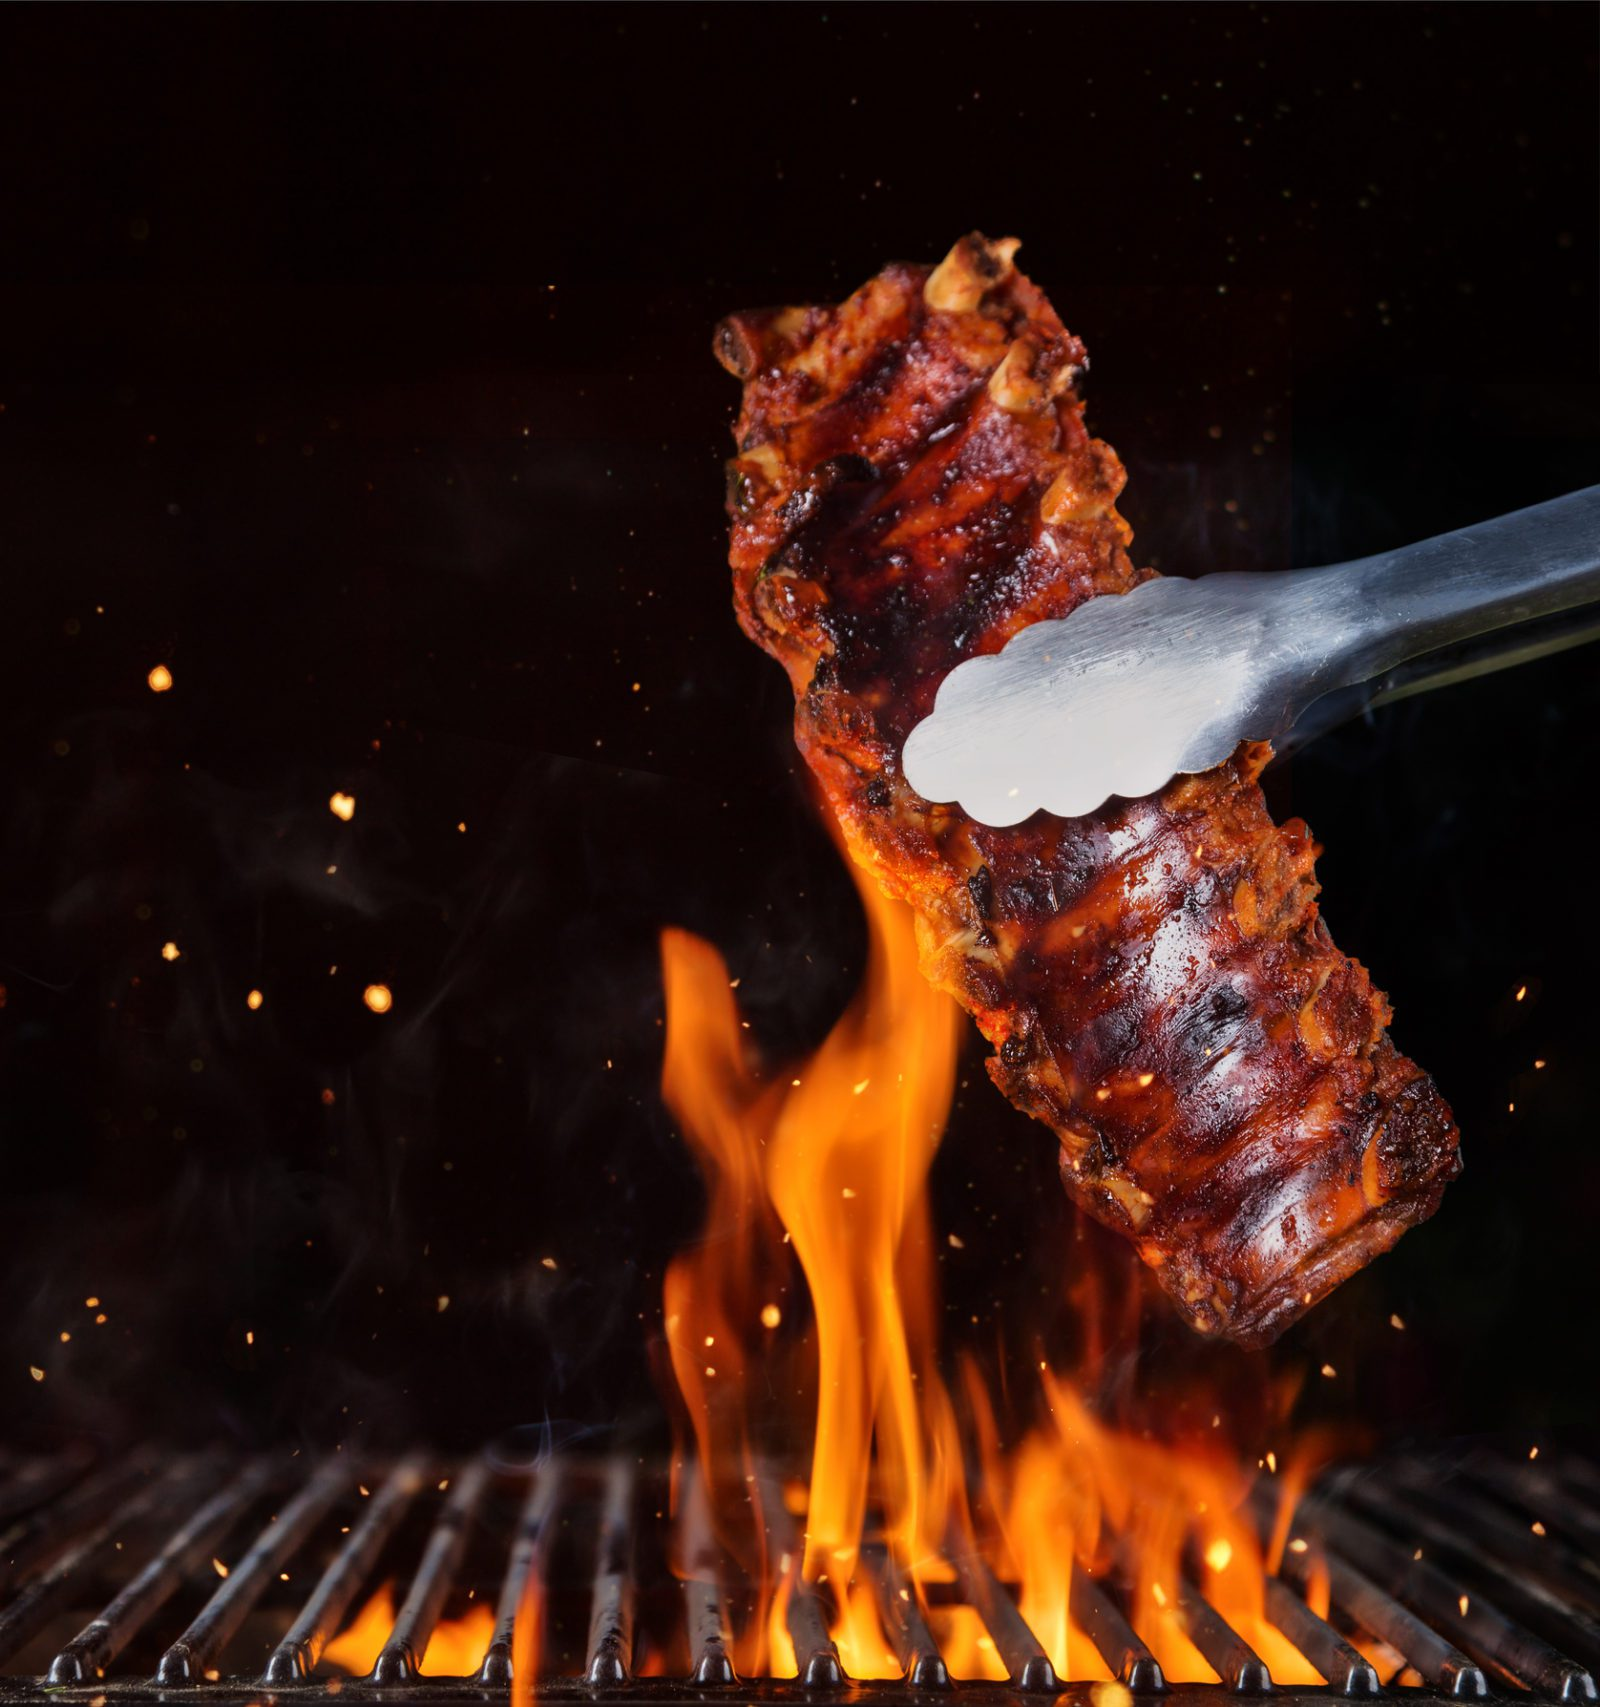 Pork ribs over flaming grill